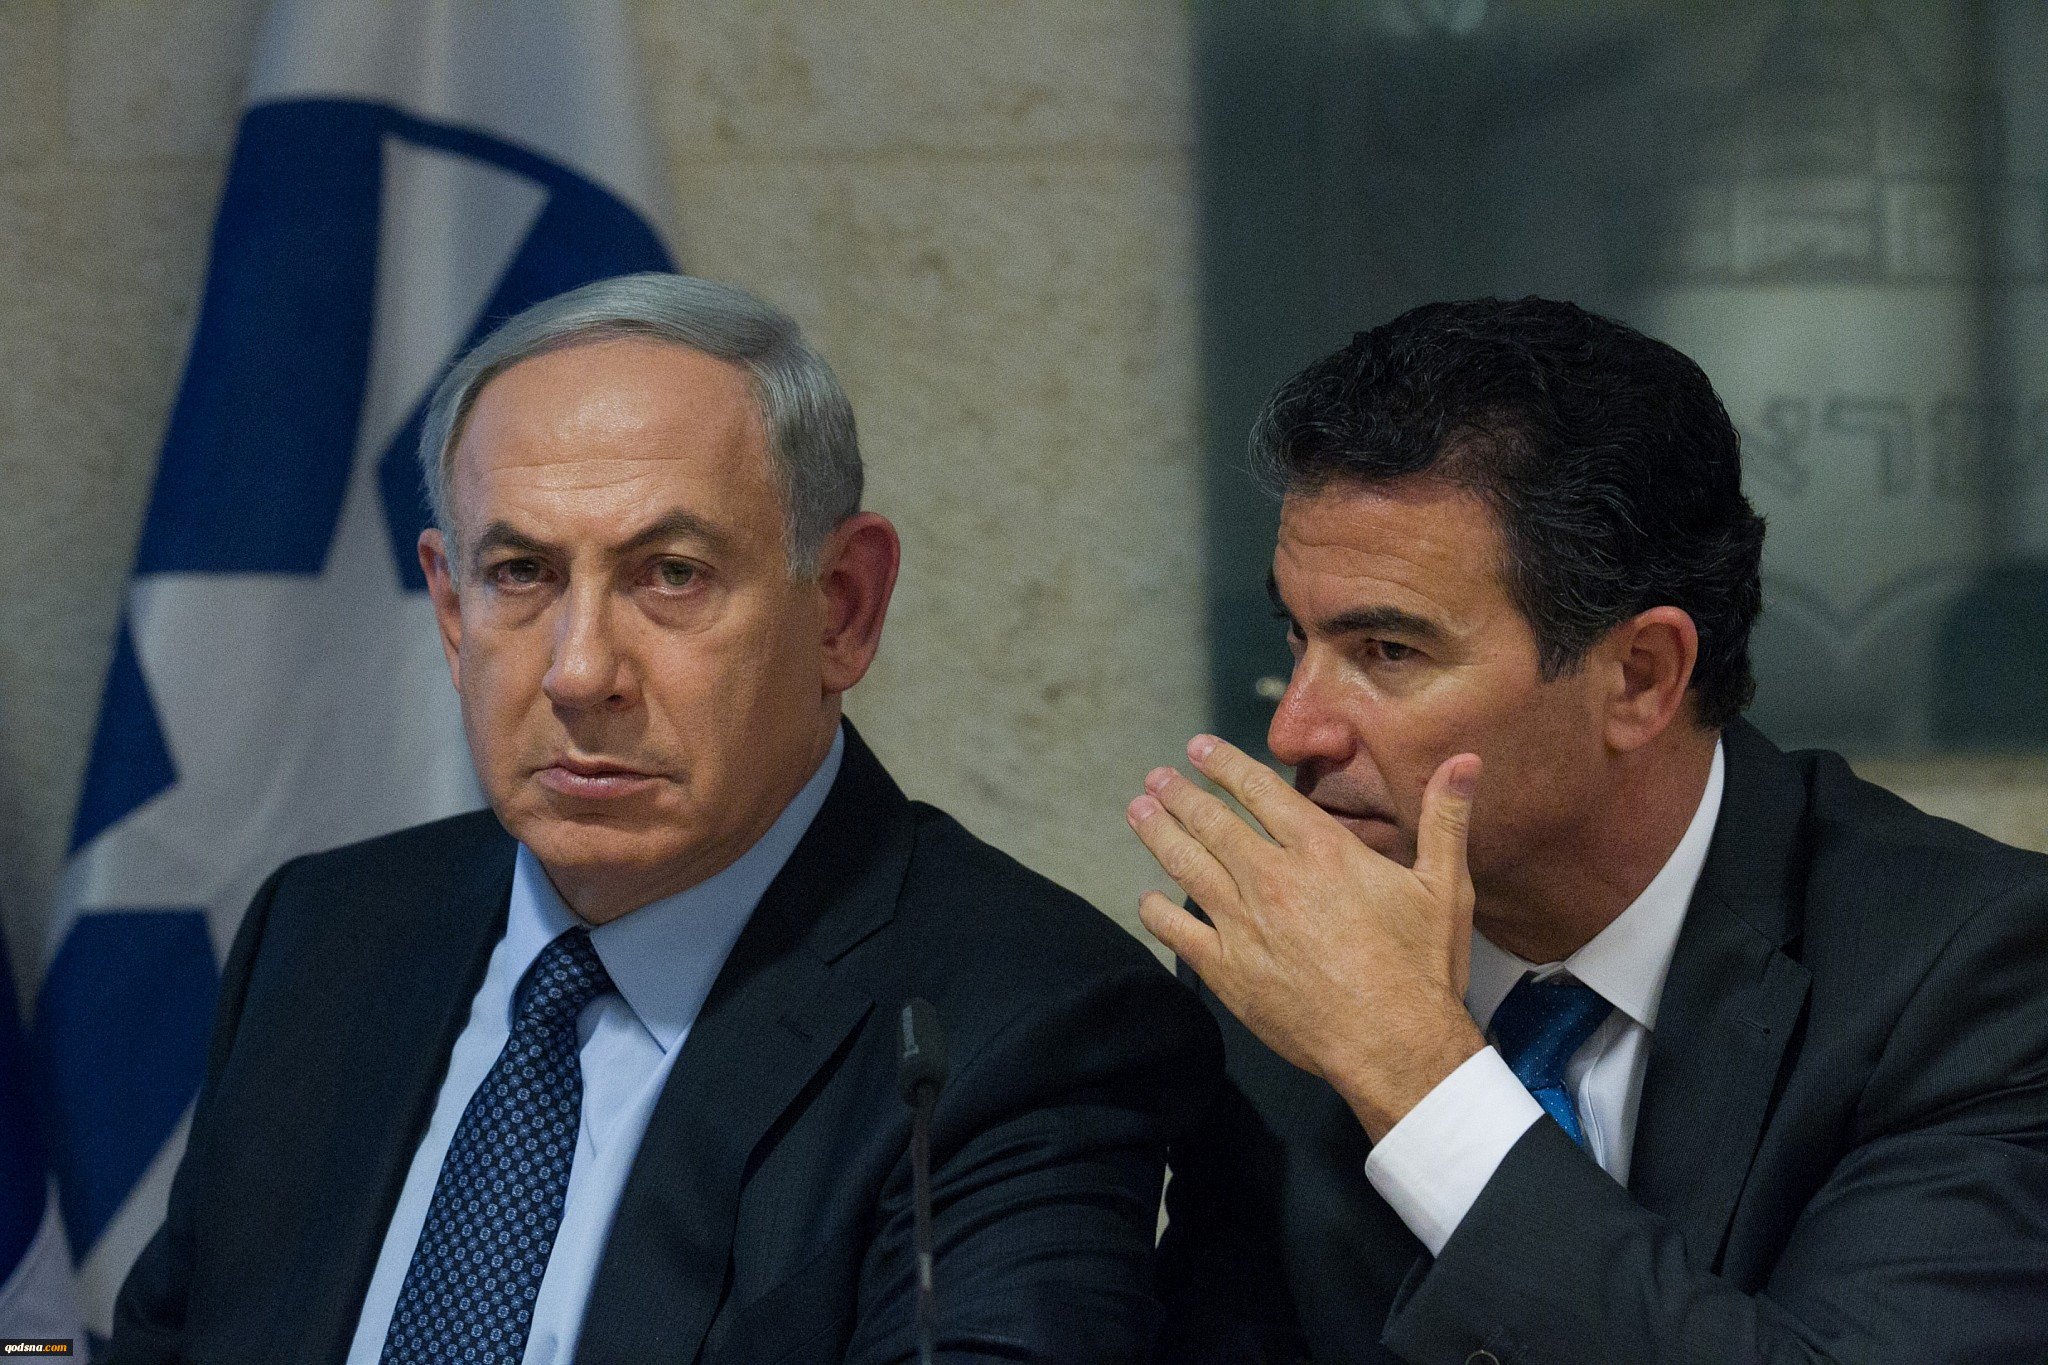 Head of Mossad to outline Israeli demands to Biden for rejoining Iran Nuclear Deal